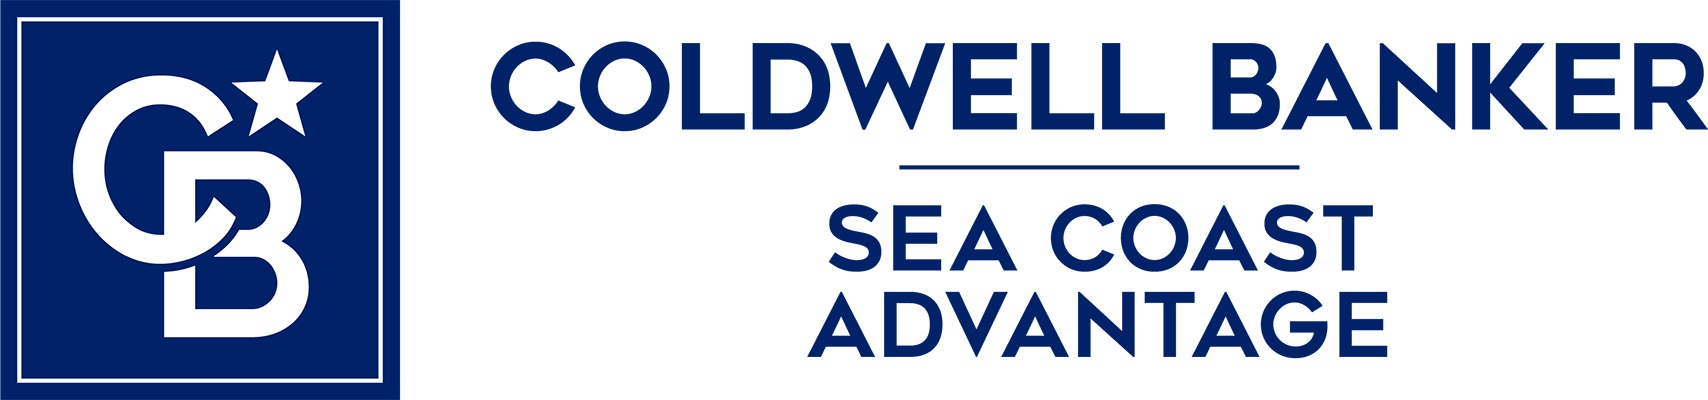 Nick Newell - Coldwell Banker Sea Coast Advantage Realty